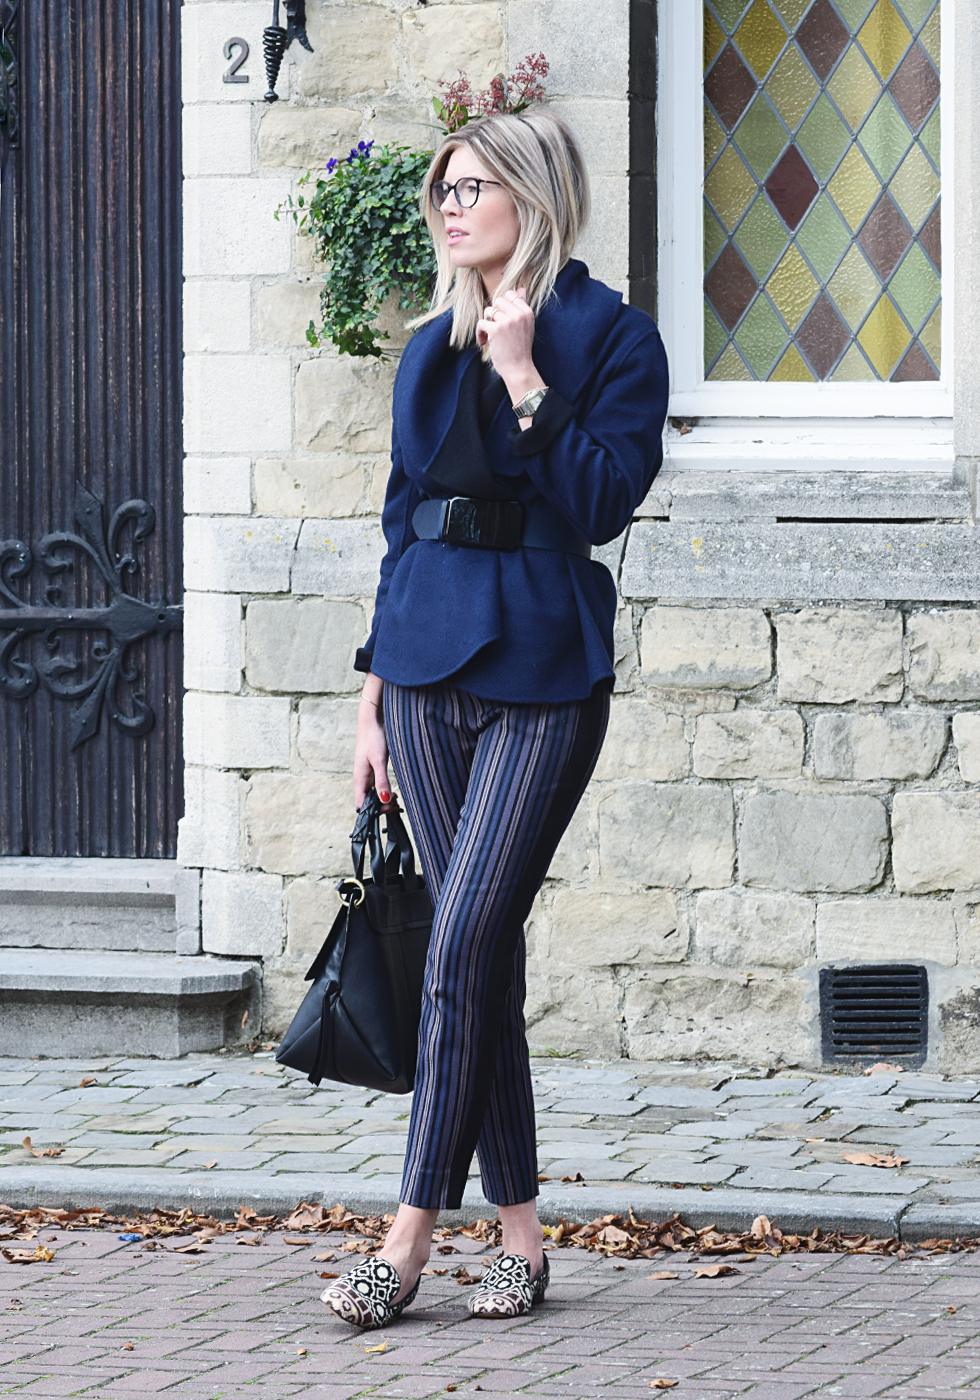 Outfit of the day, Chanel, Cartier, Maliparmi, ootd, style, fashion, blogger